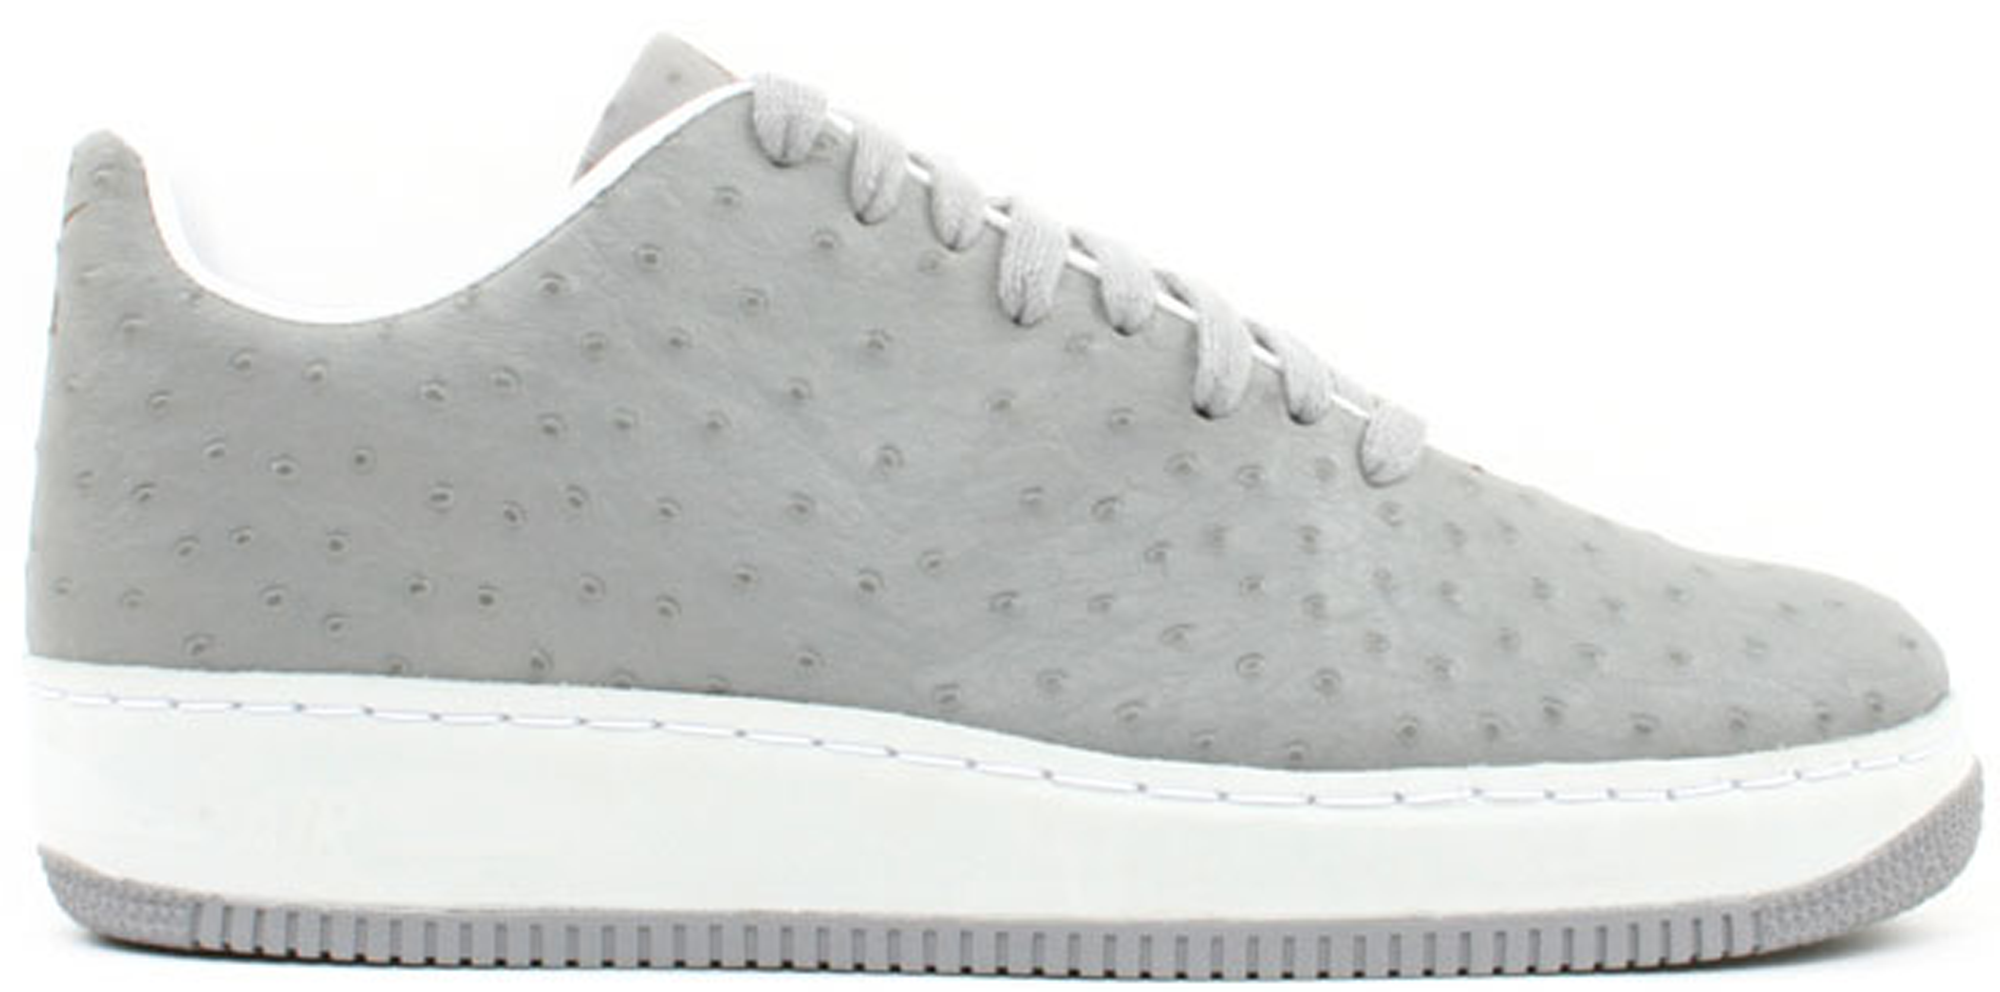 ostrich air force ones